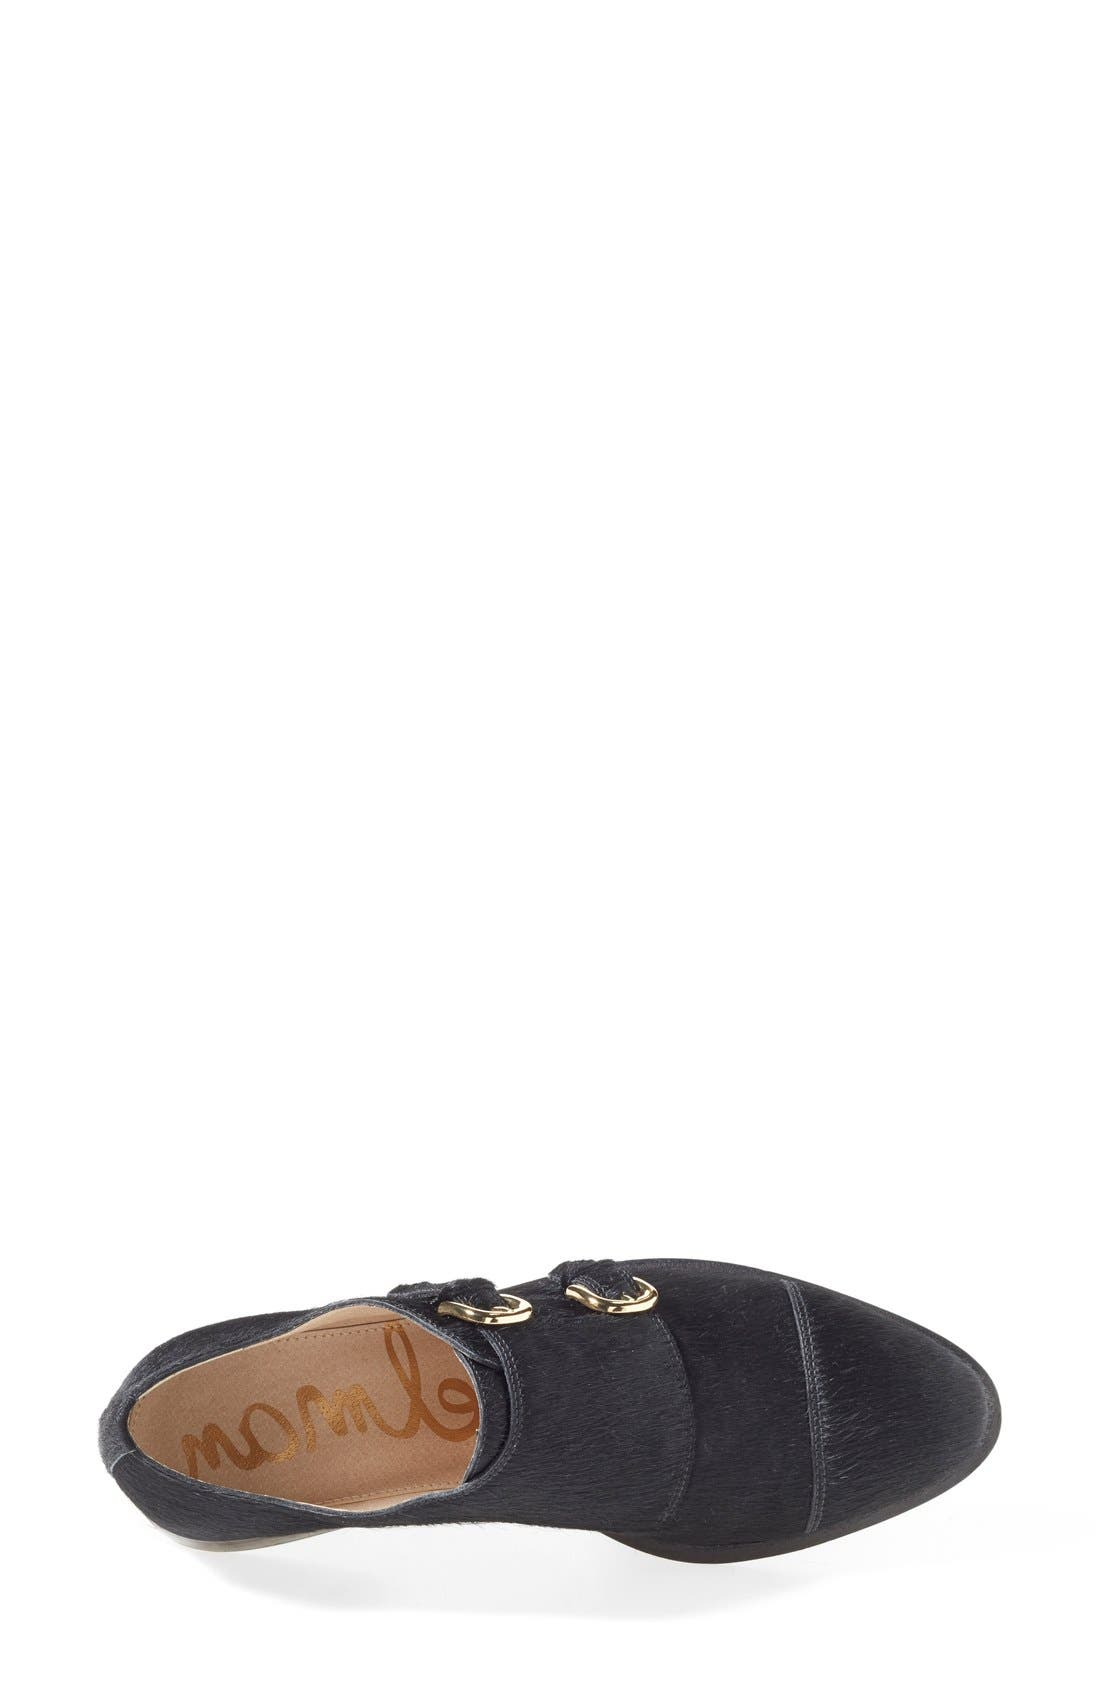 Alternate Image 2  - Sam Edelman 'Balfour' Double Monk Strap Flat (Women)